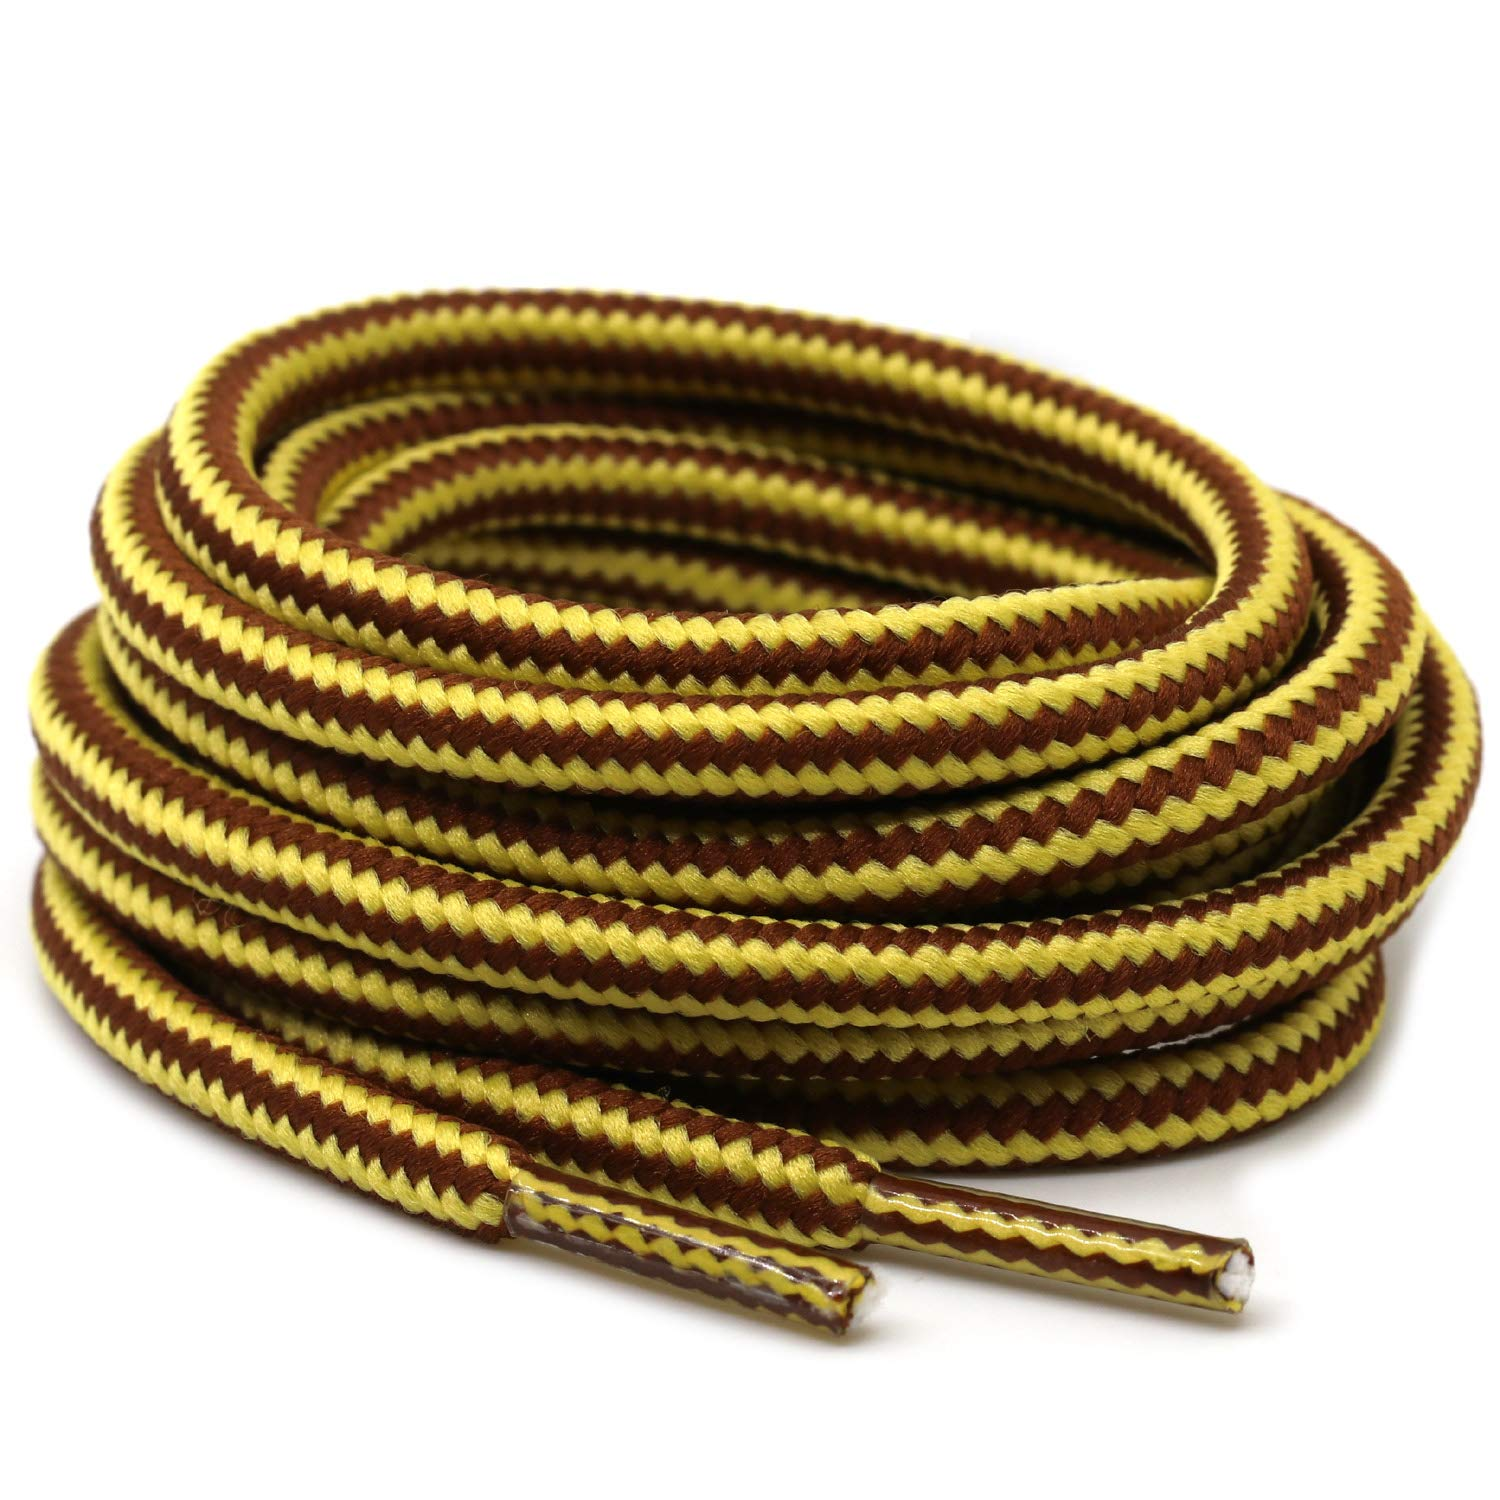 DELELE 2 Pair Strong Boot Laces Hiking Walking Boot Shoelaces Round Rope Dual Coloured Striped Shoe Lace Strings